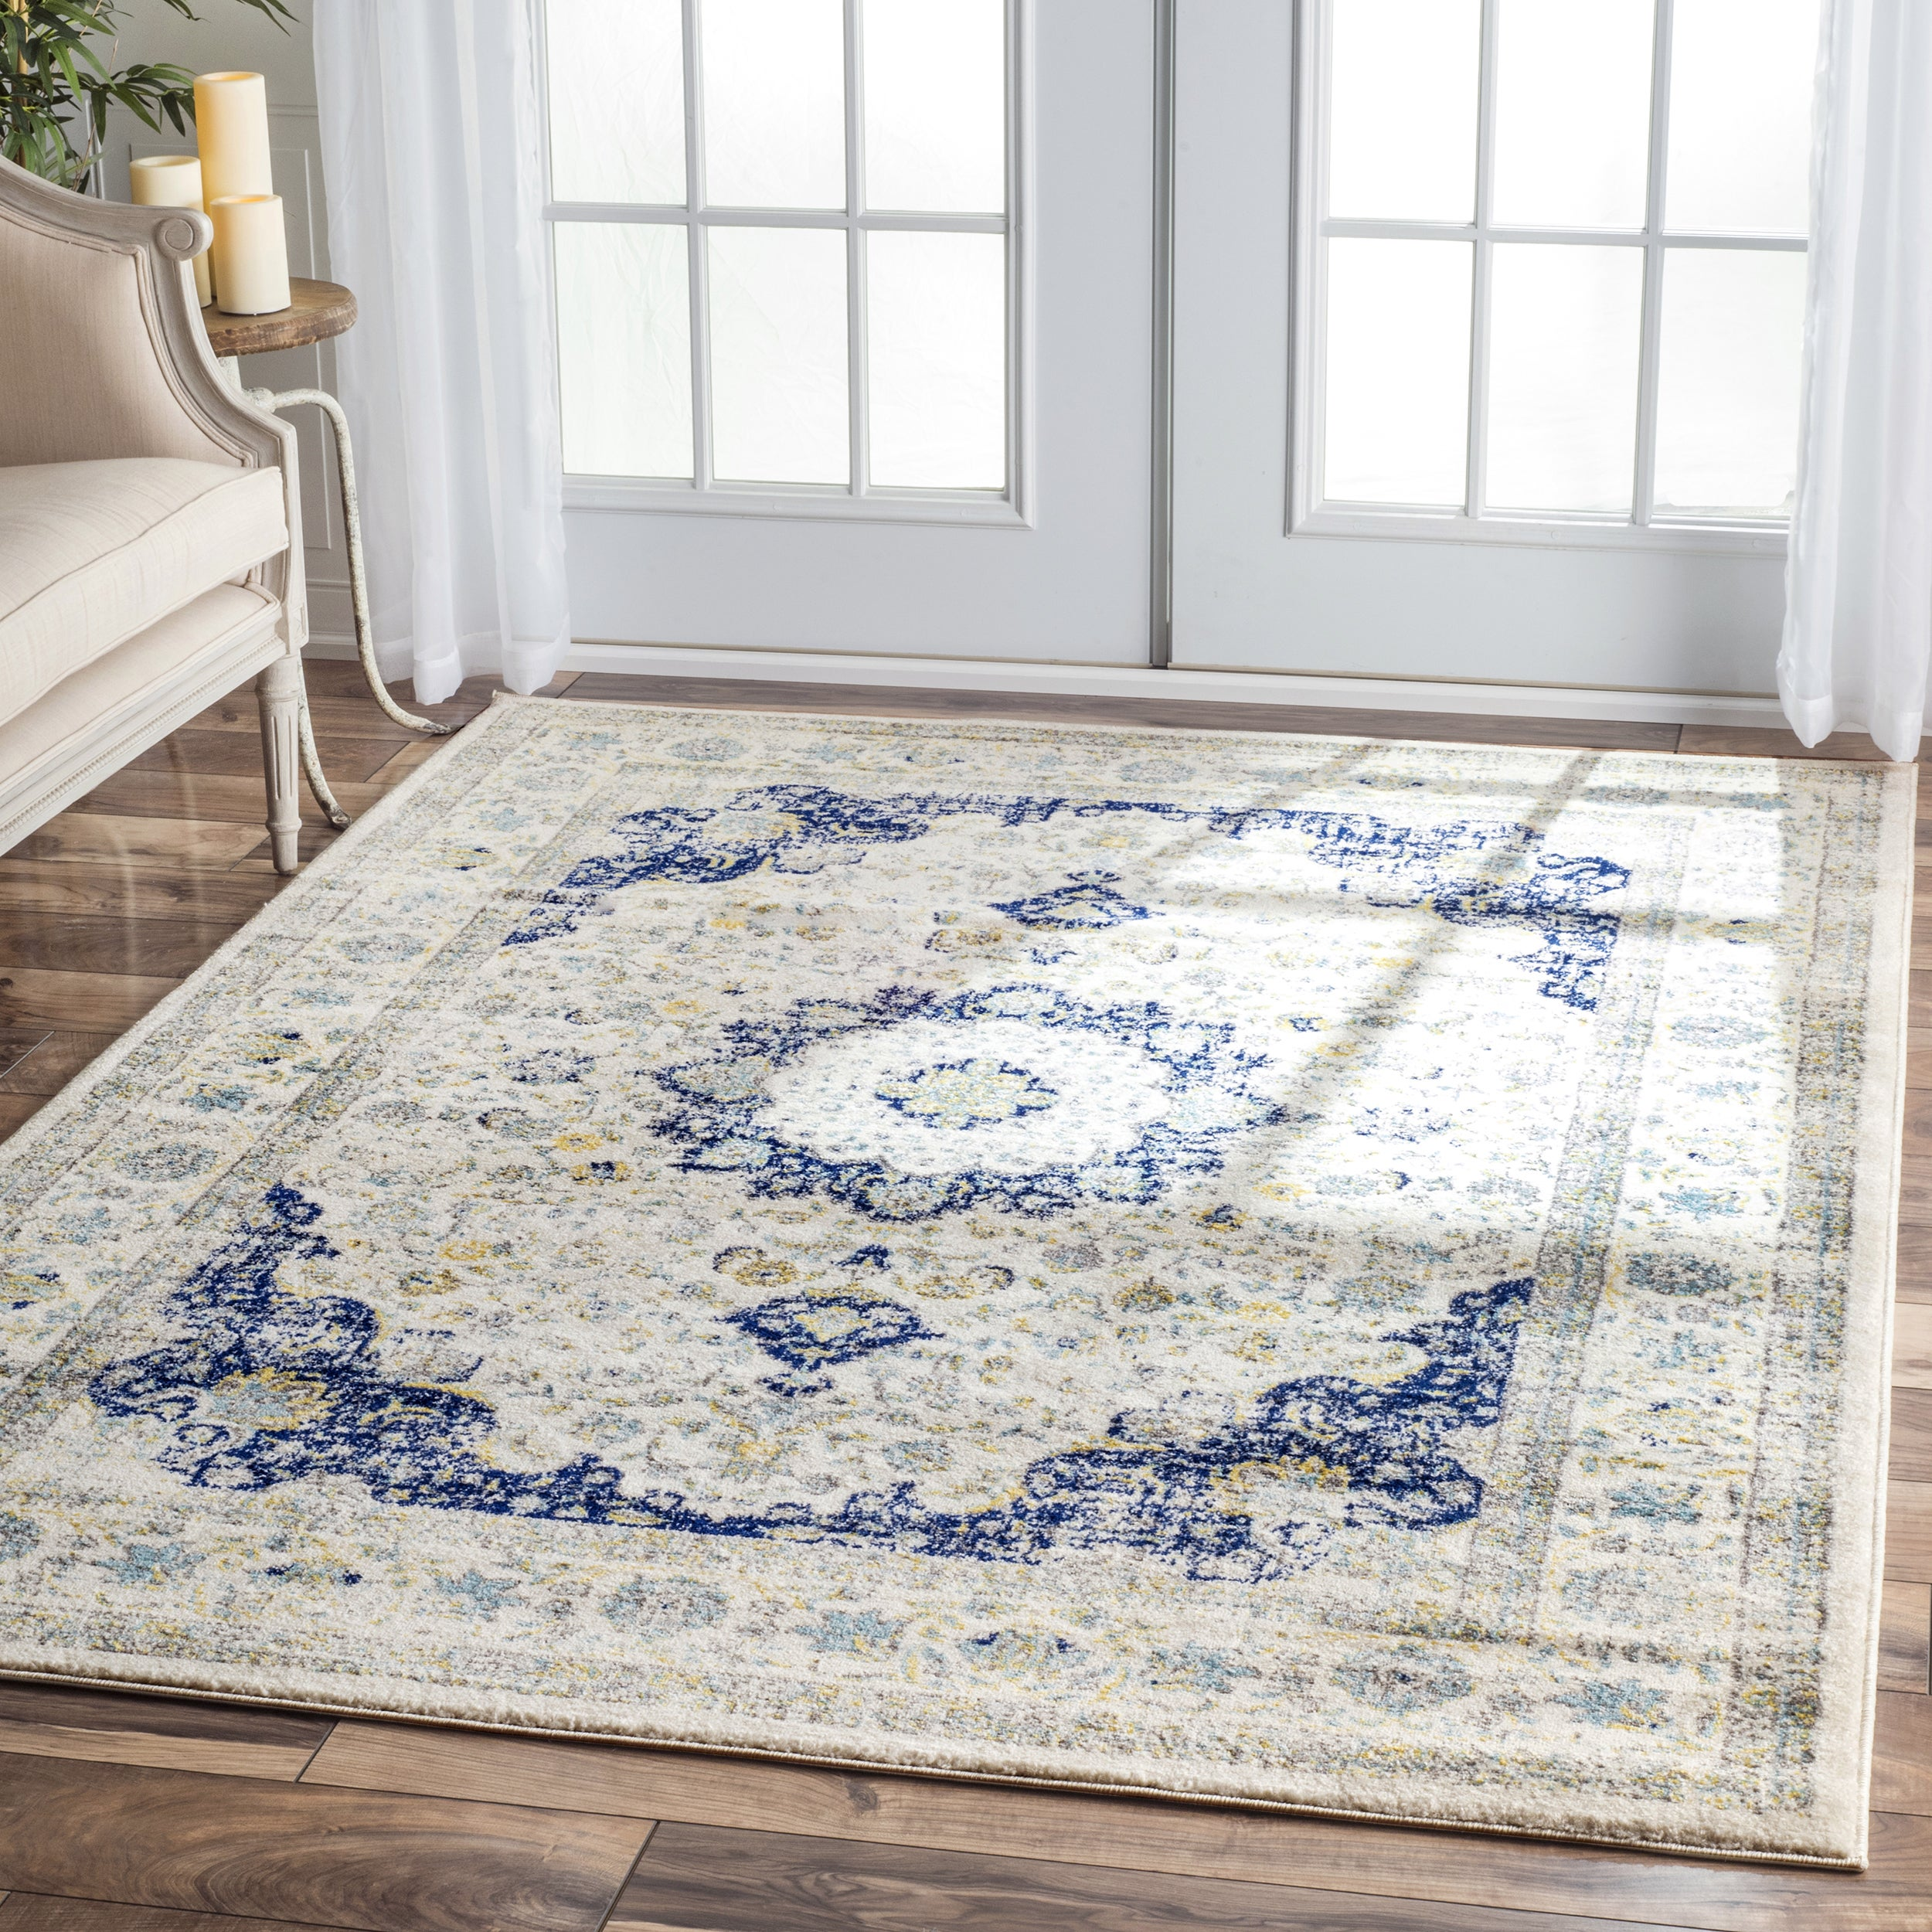 Shop Nuloom Traditional Persian Vintage Blue Square Area Rug 8